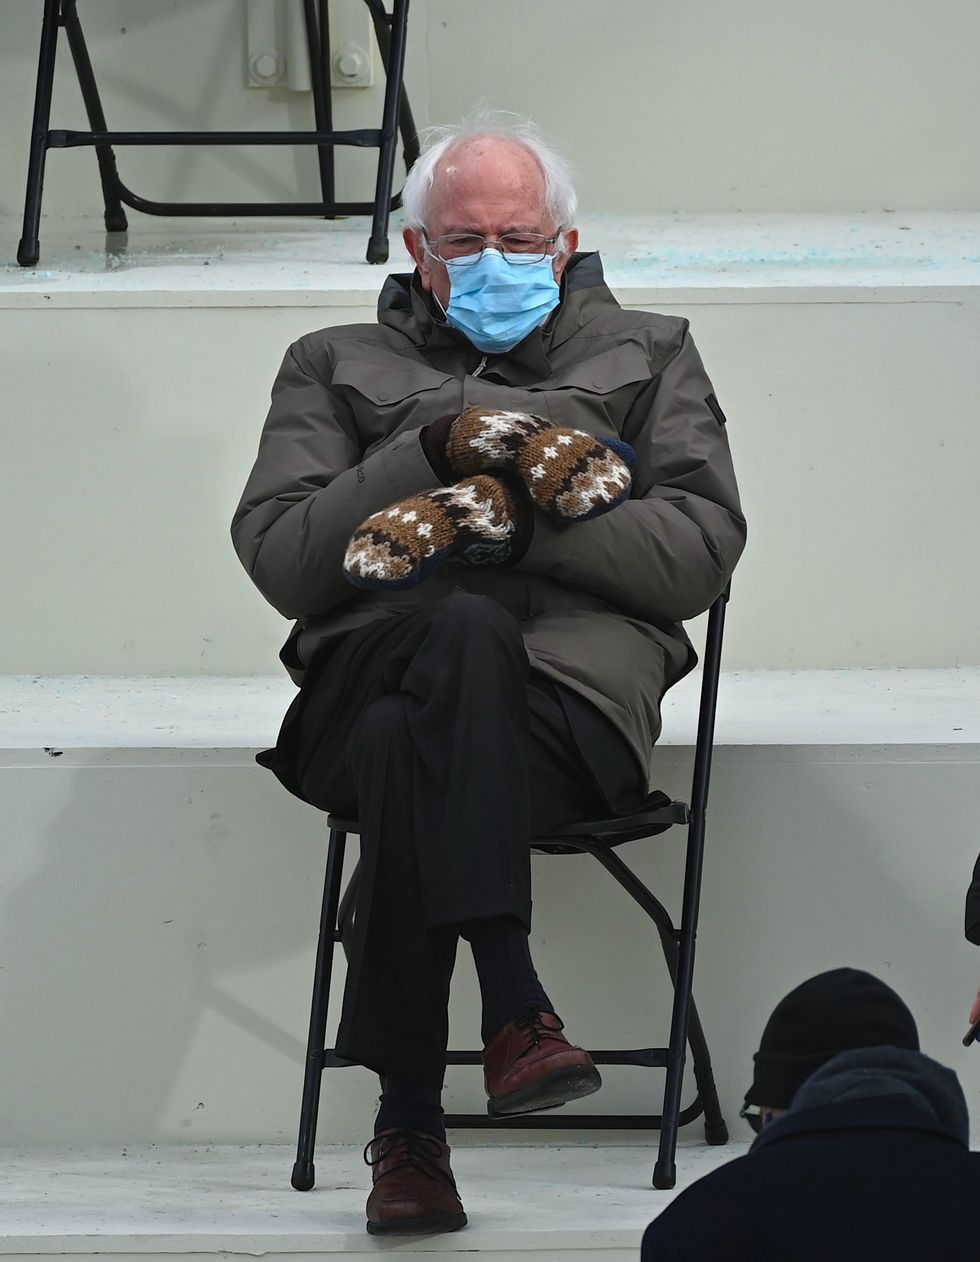 Bernie Sanders sits looking depressed at Biden's inauguration